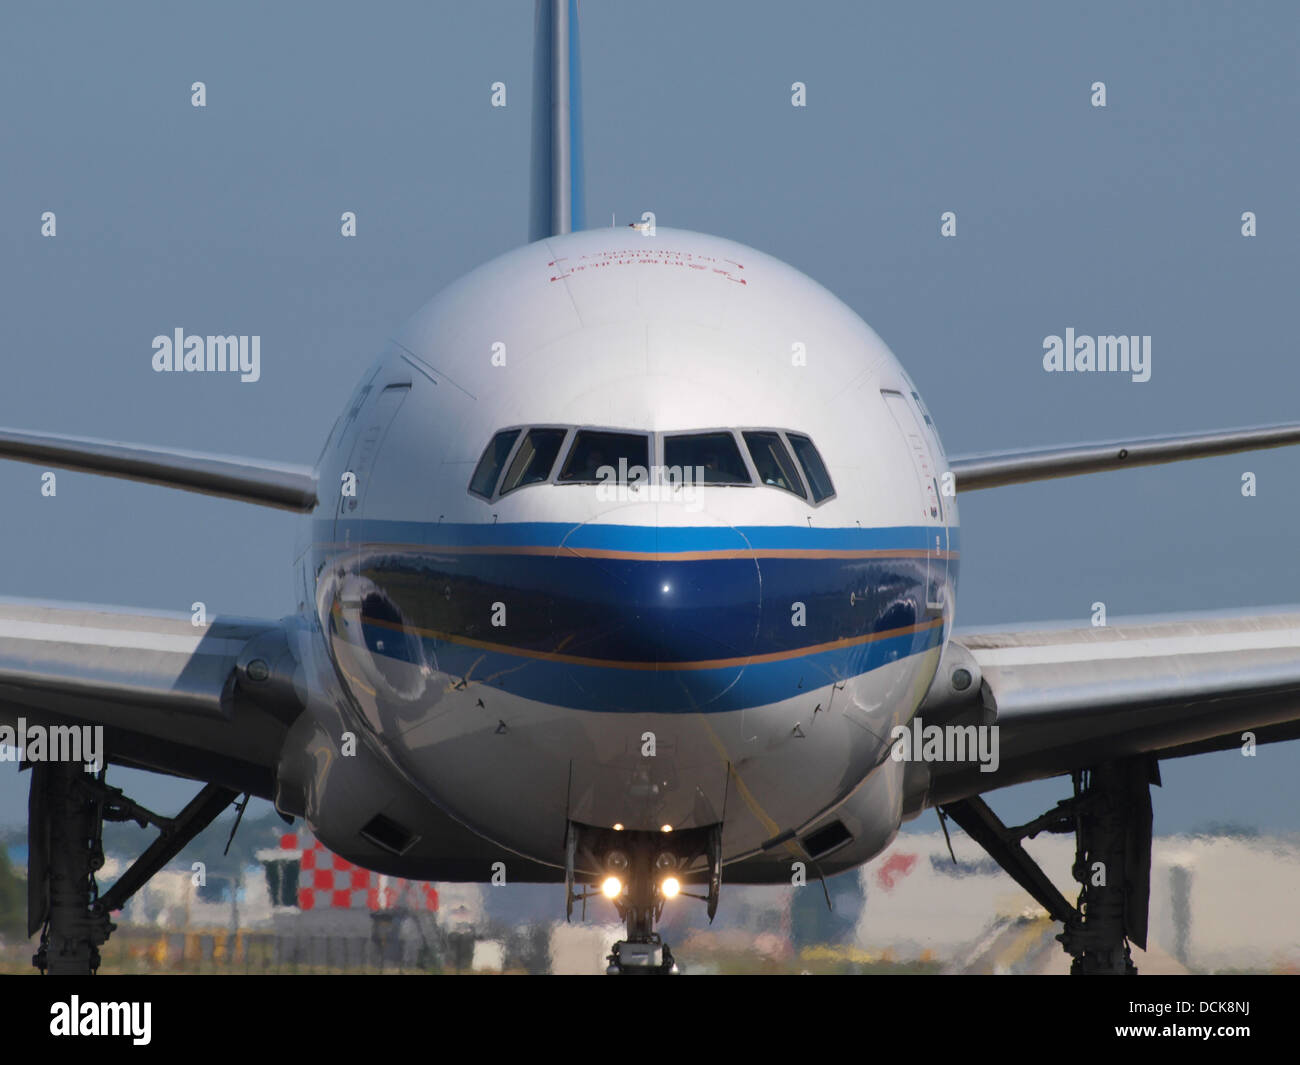 B-2071 China Southern Airlines Boeing 777-F1B - cn 37309 taxiing 18july2013 pic-001 - Stock Image